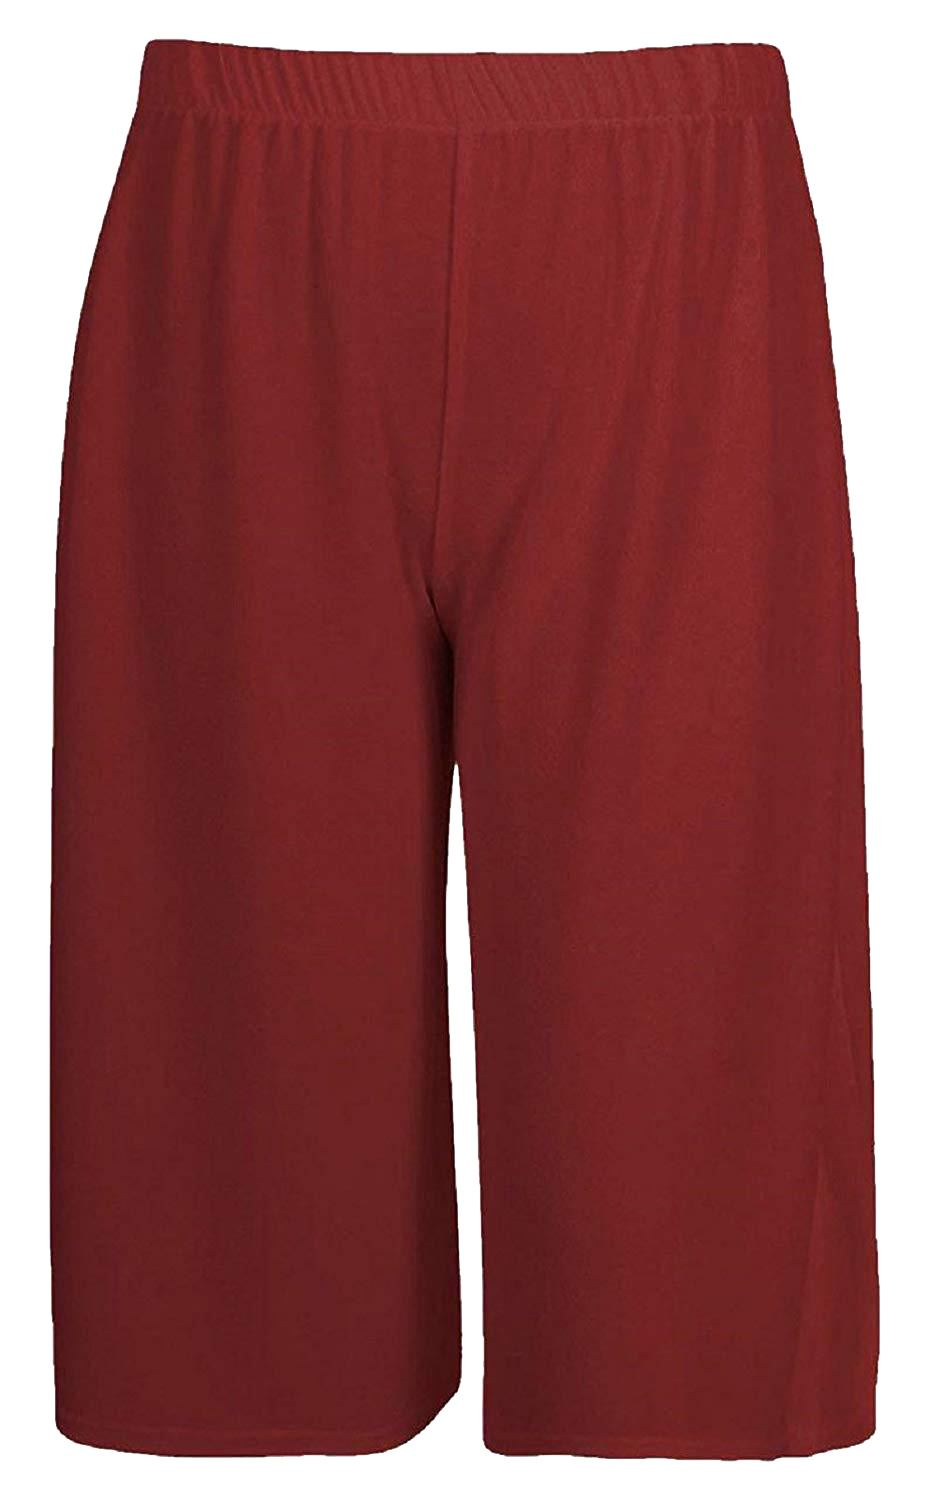 New-Womens-Plus-Size-Stretch-Elasticated-Wide-Leg-Culottes-Shorts-16-26